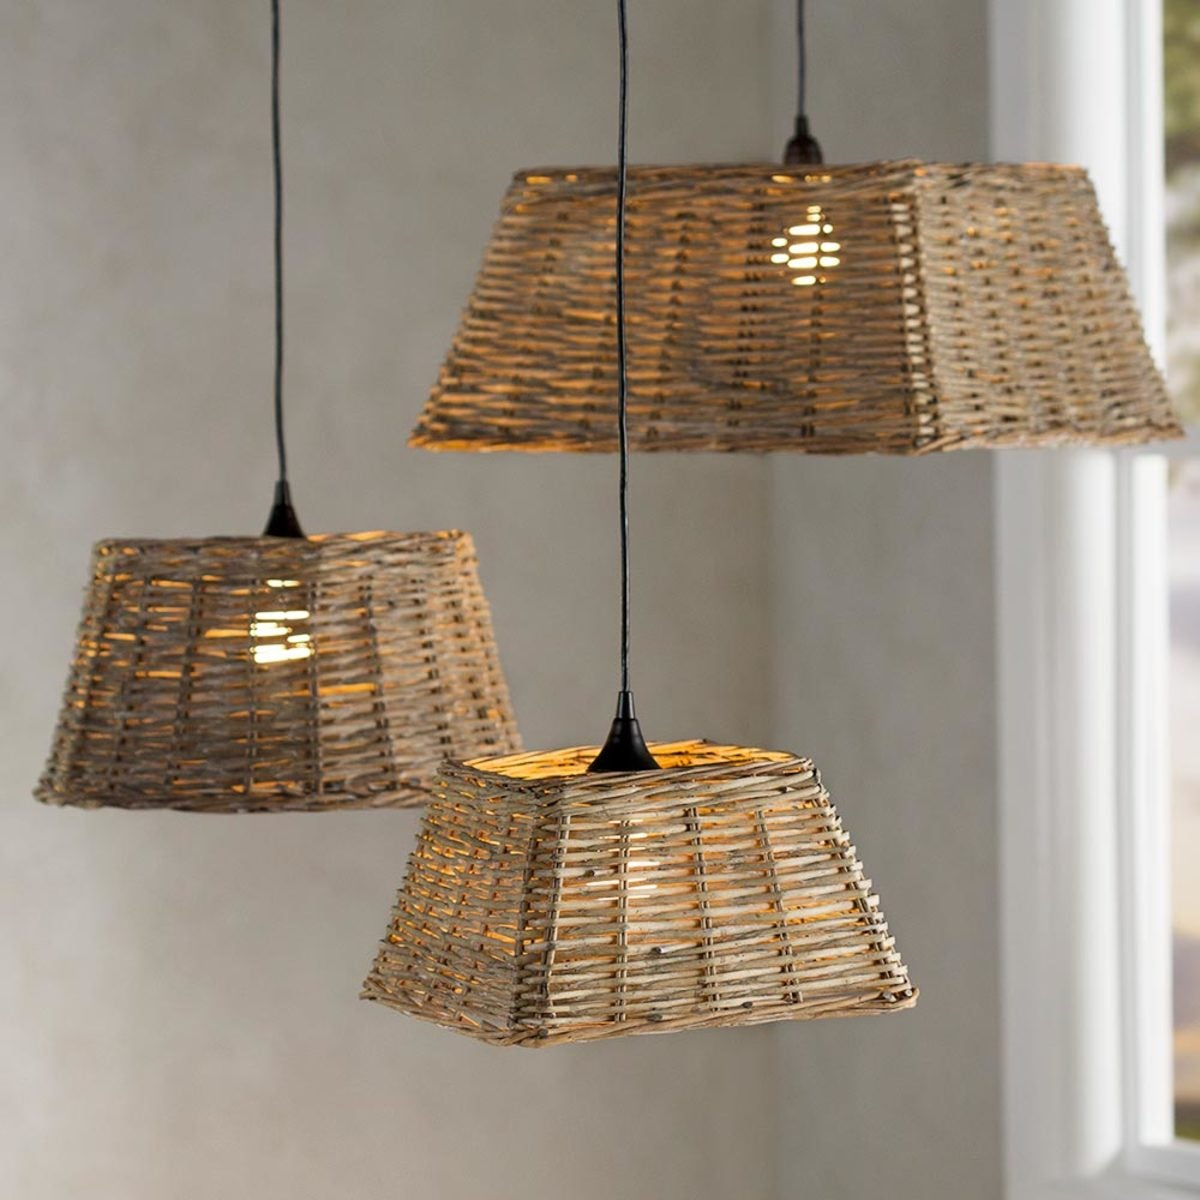 Handwoven Rattan Pendant Light Collection